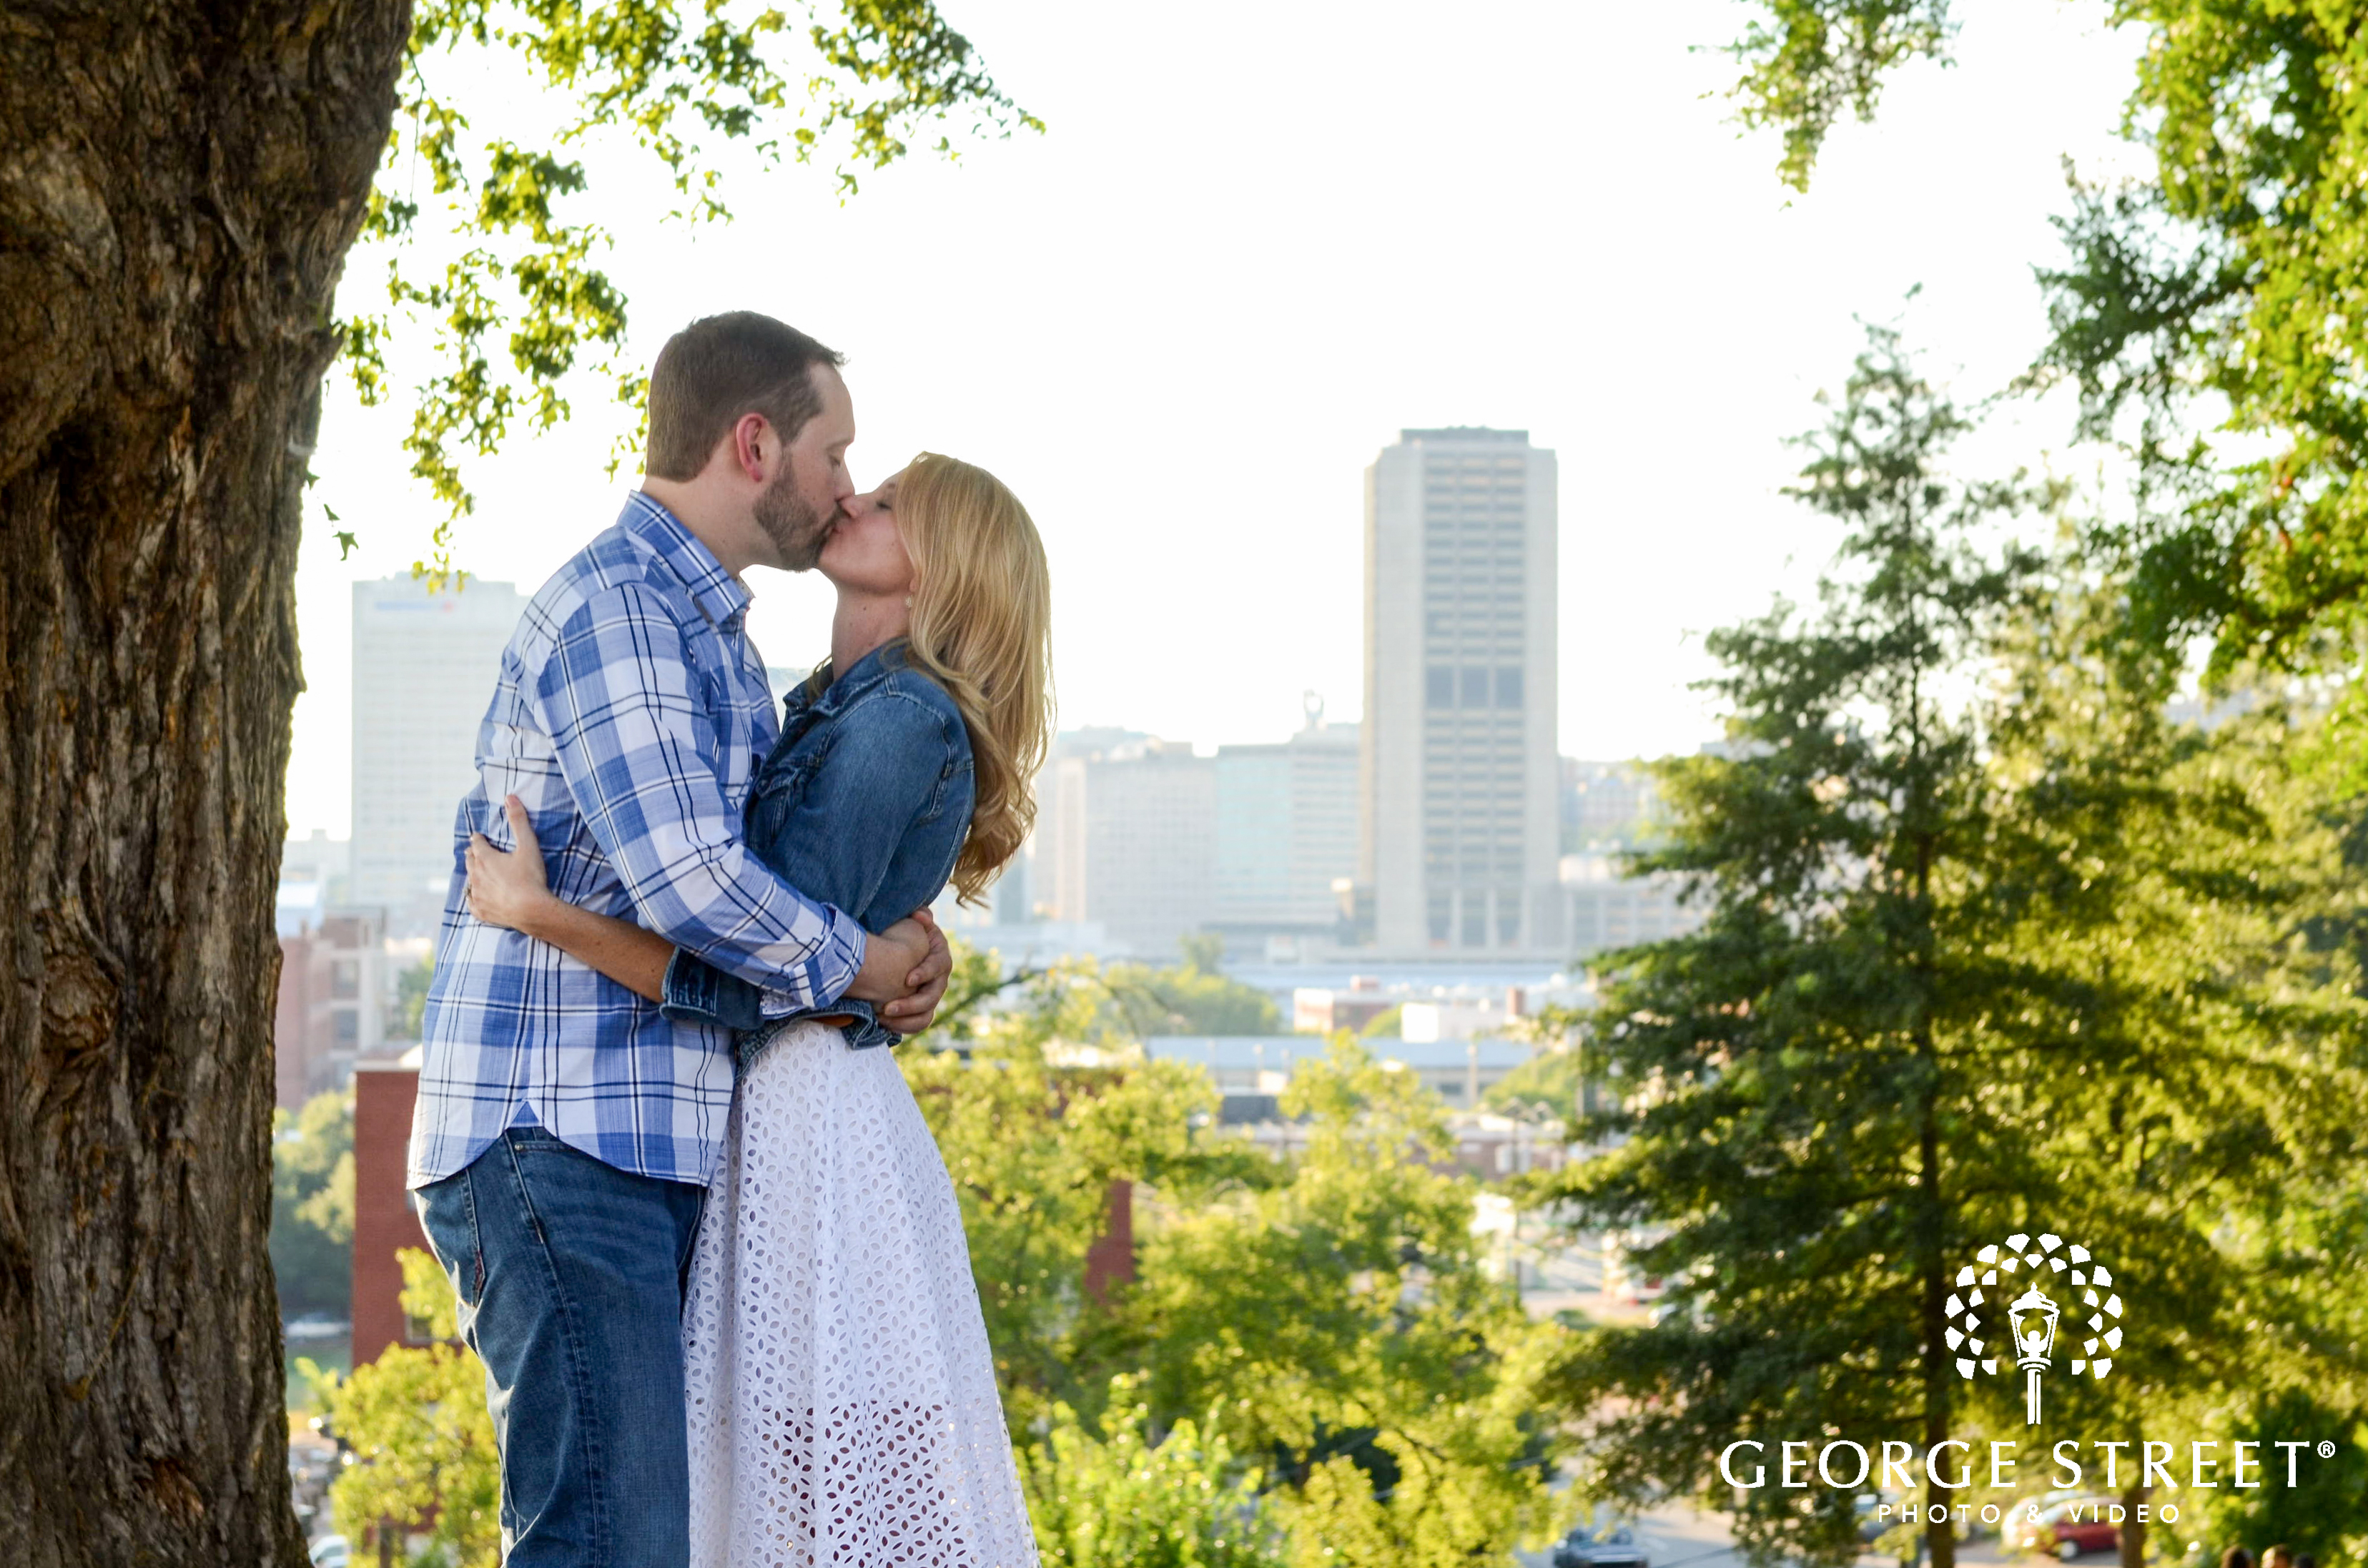 George Street's Top 3 Engagement Session Locations in Richmond